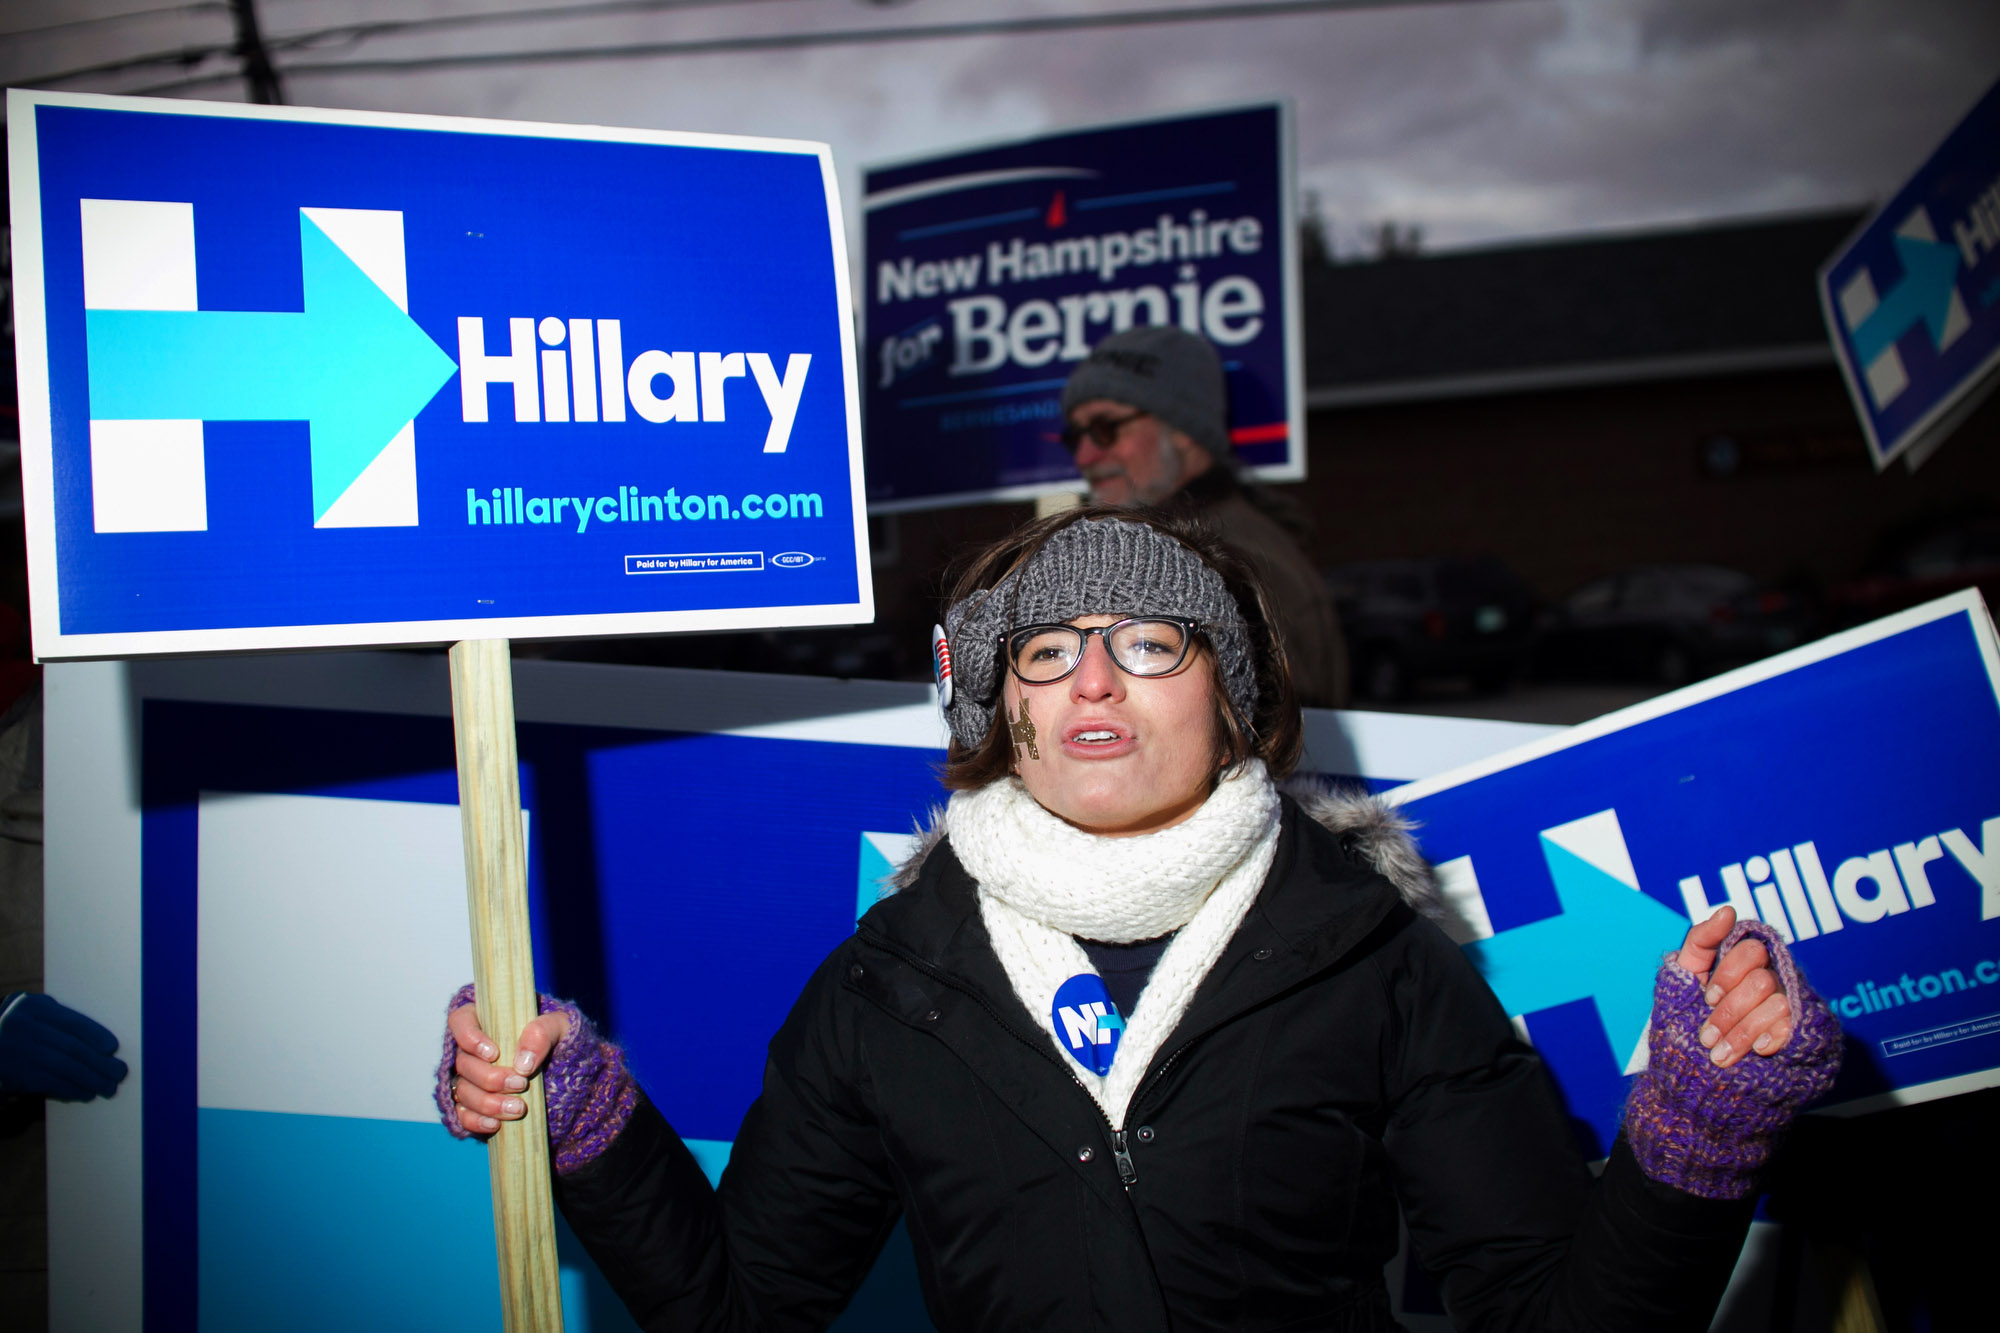 A woman chants to show her support for Democratic candidate for president Hillary Clinton, prior to a Democratic candidates debate at St. Anselm College in Manchester, New Hampshire on December 19, 2015. This will be the third Democratic debate.